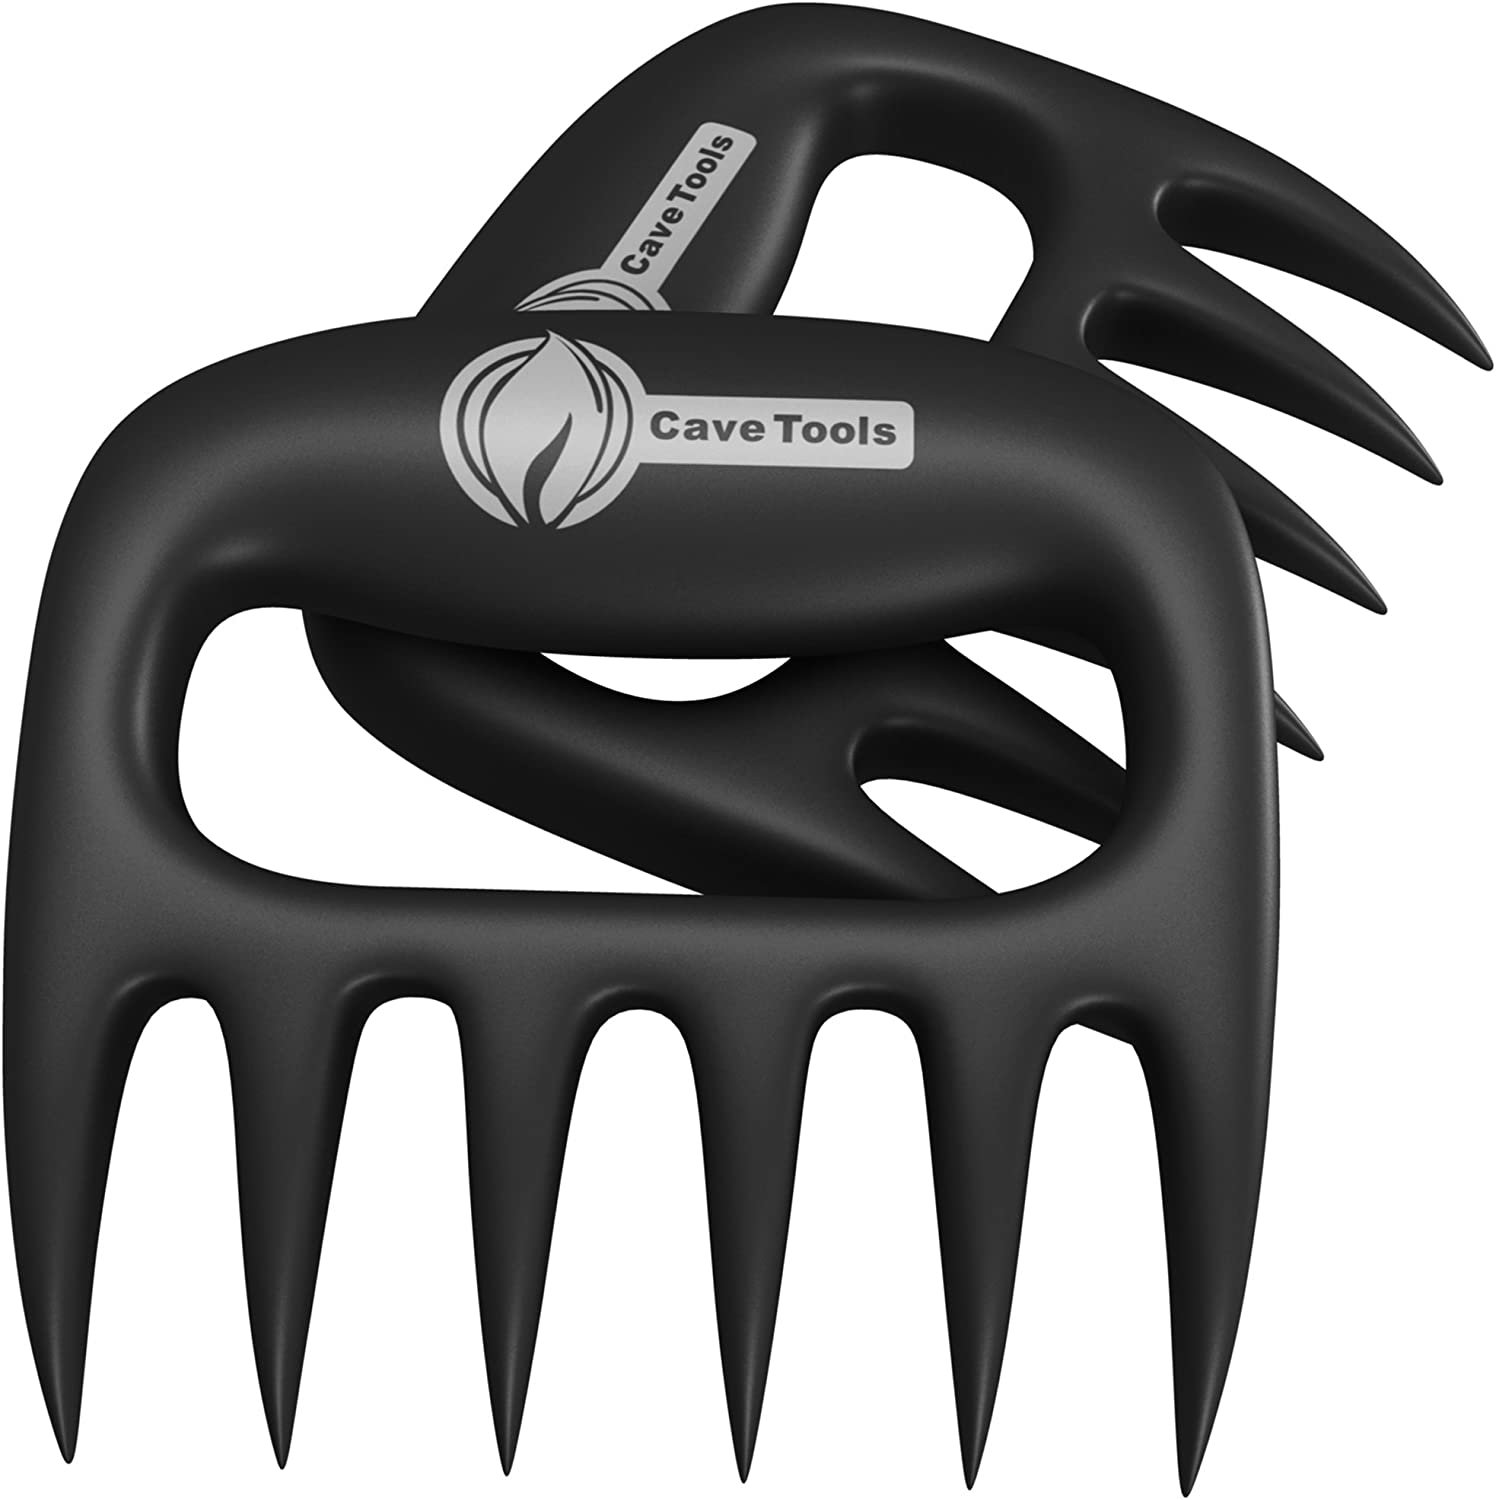 Pulled Pork Shredder Claws - Strongest BBQ Meat Forks - Shredding Handling & Carving Food - Claw Handler Set for Pulling Brisket from Grill Smoker or Slow Cooker - BPA Free Barbecue Paws 71wA3I8ybmL